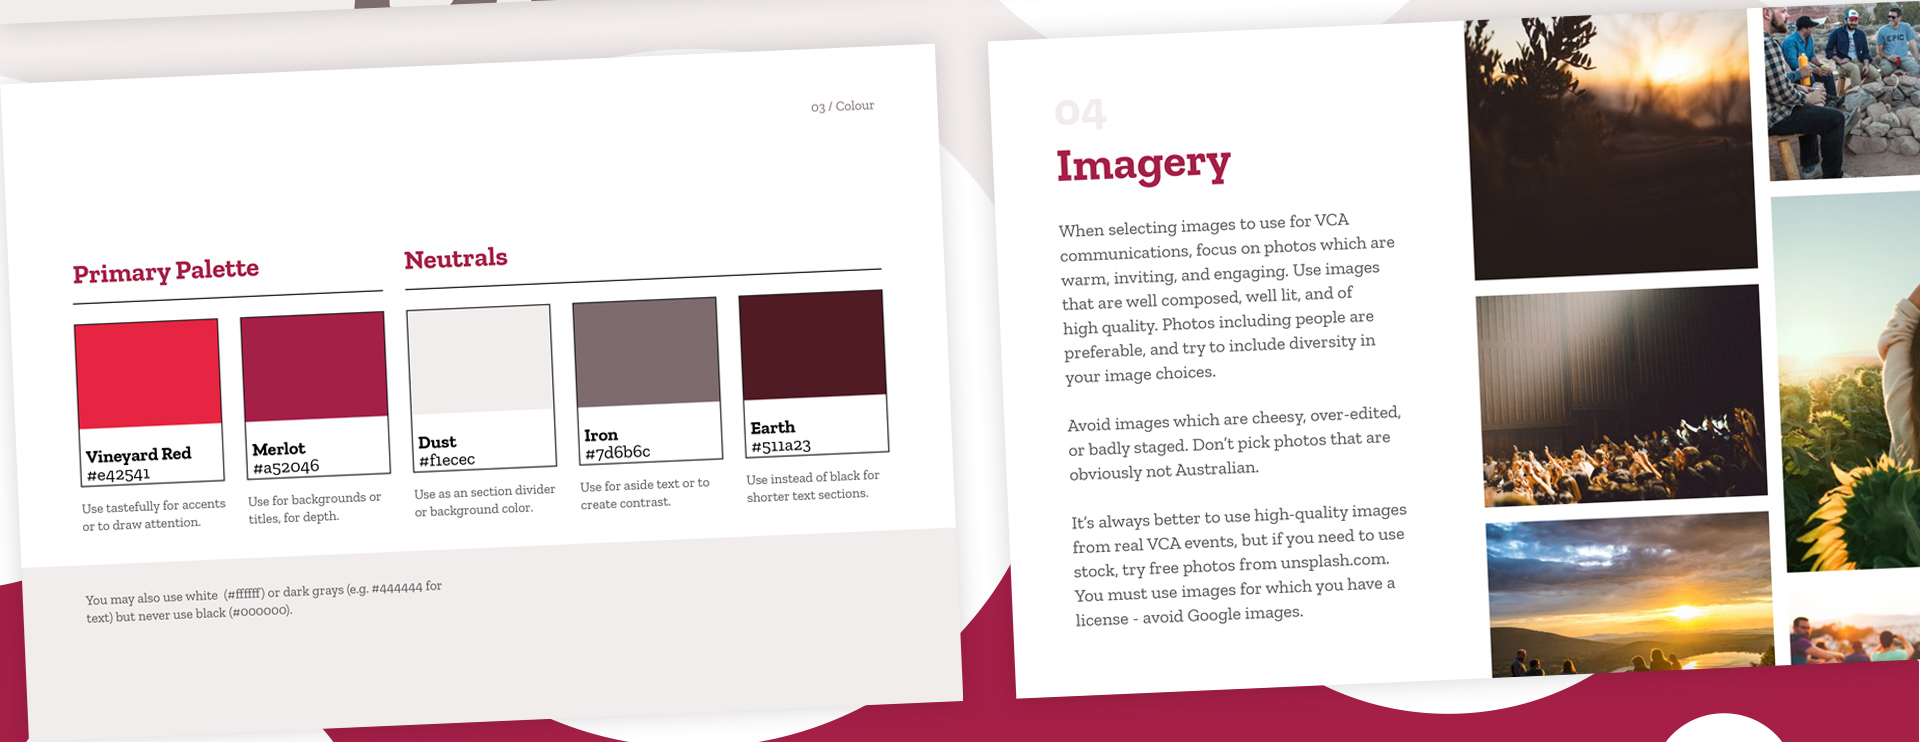 Vineyard Churches Australia Brand Guidelines 2